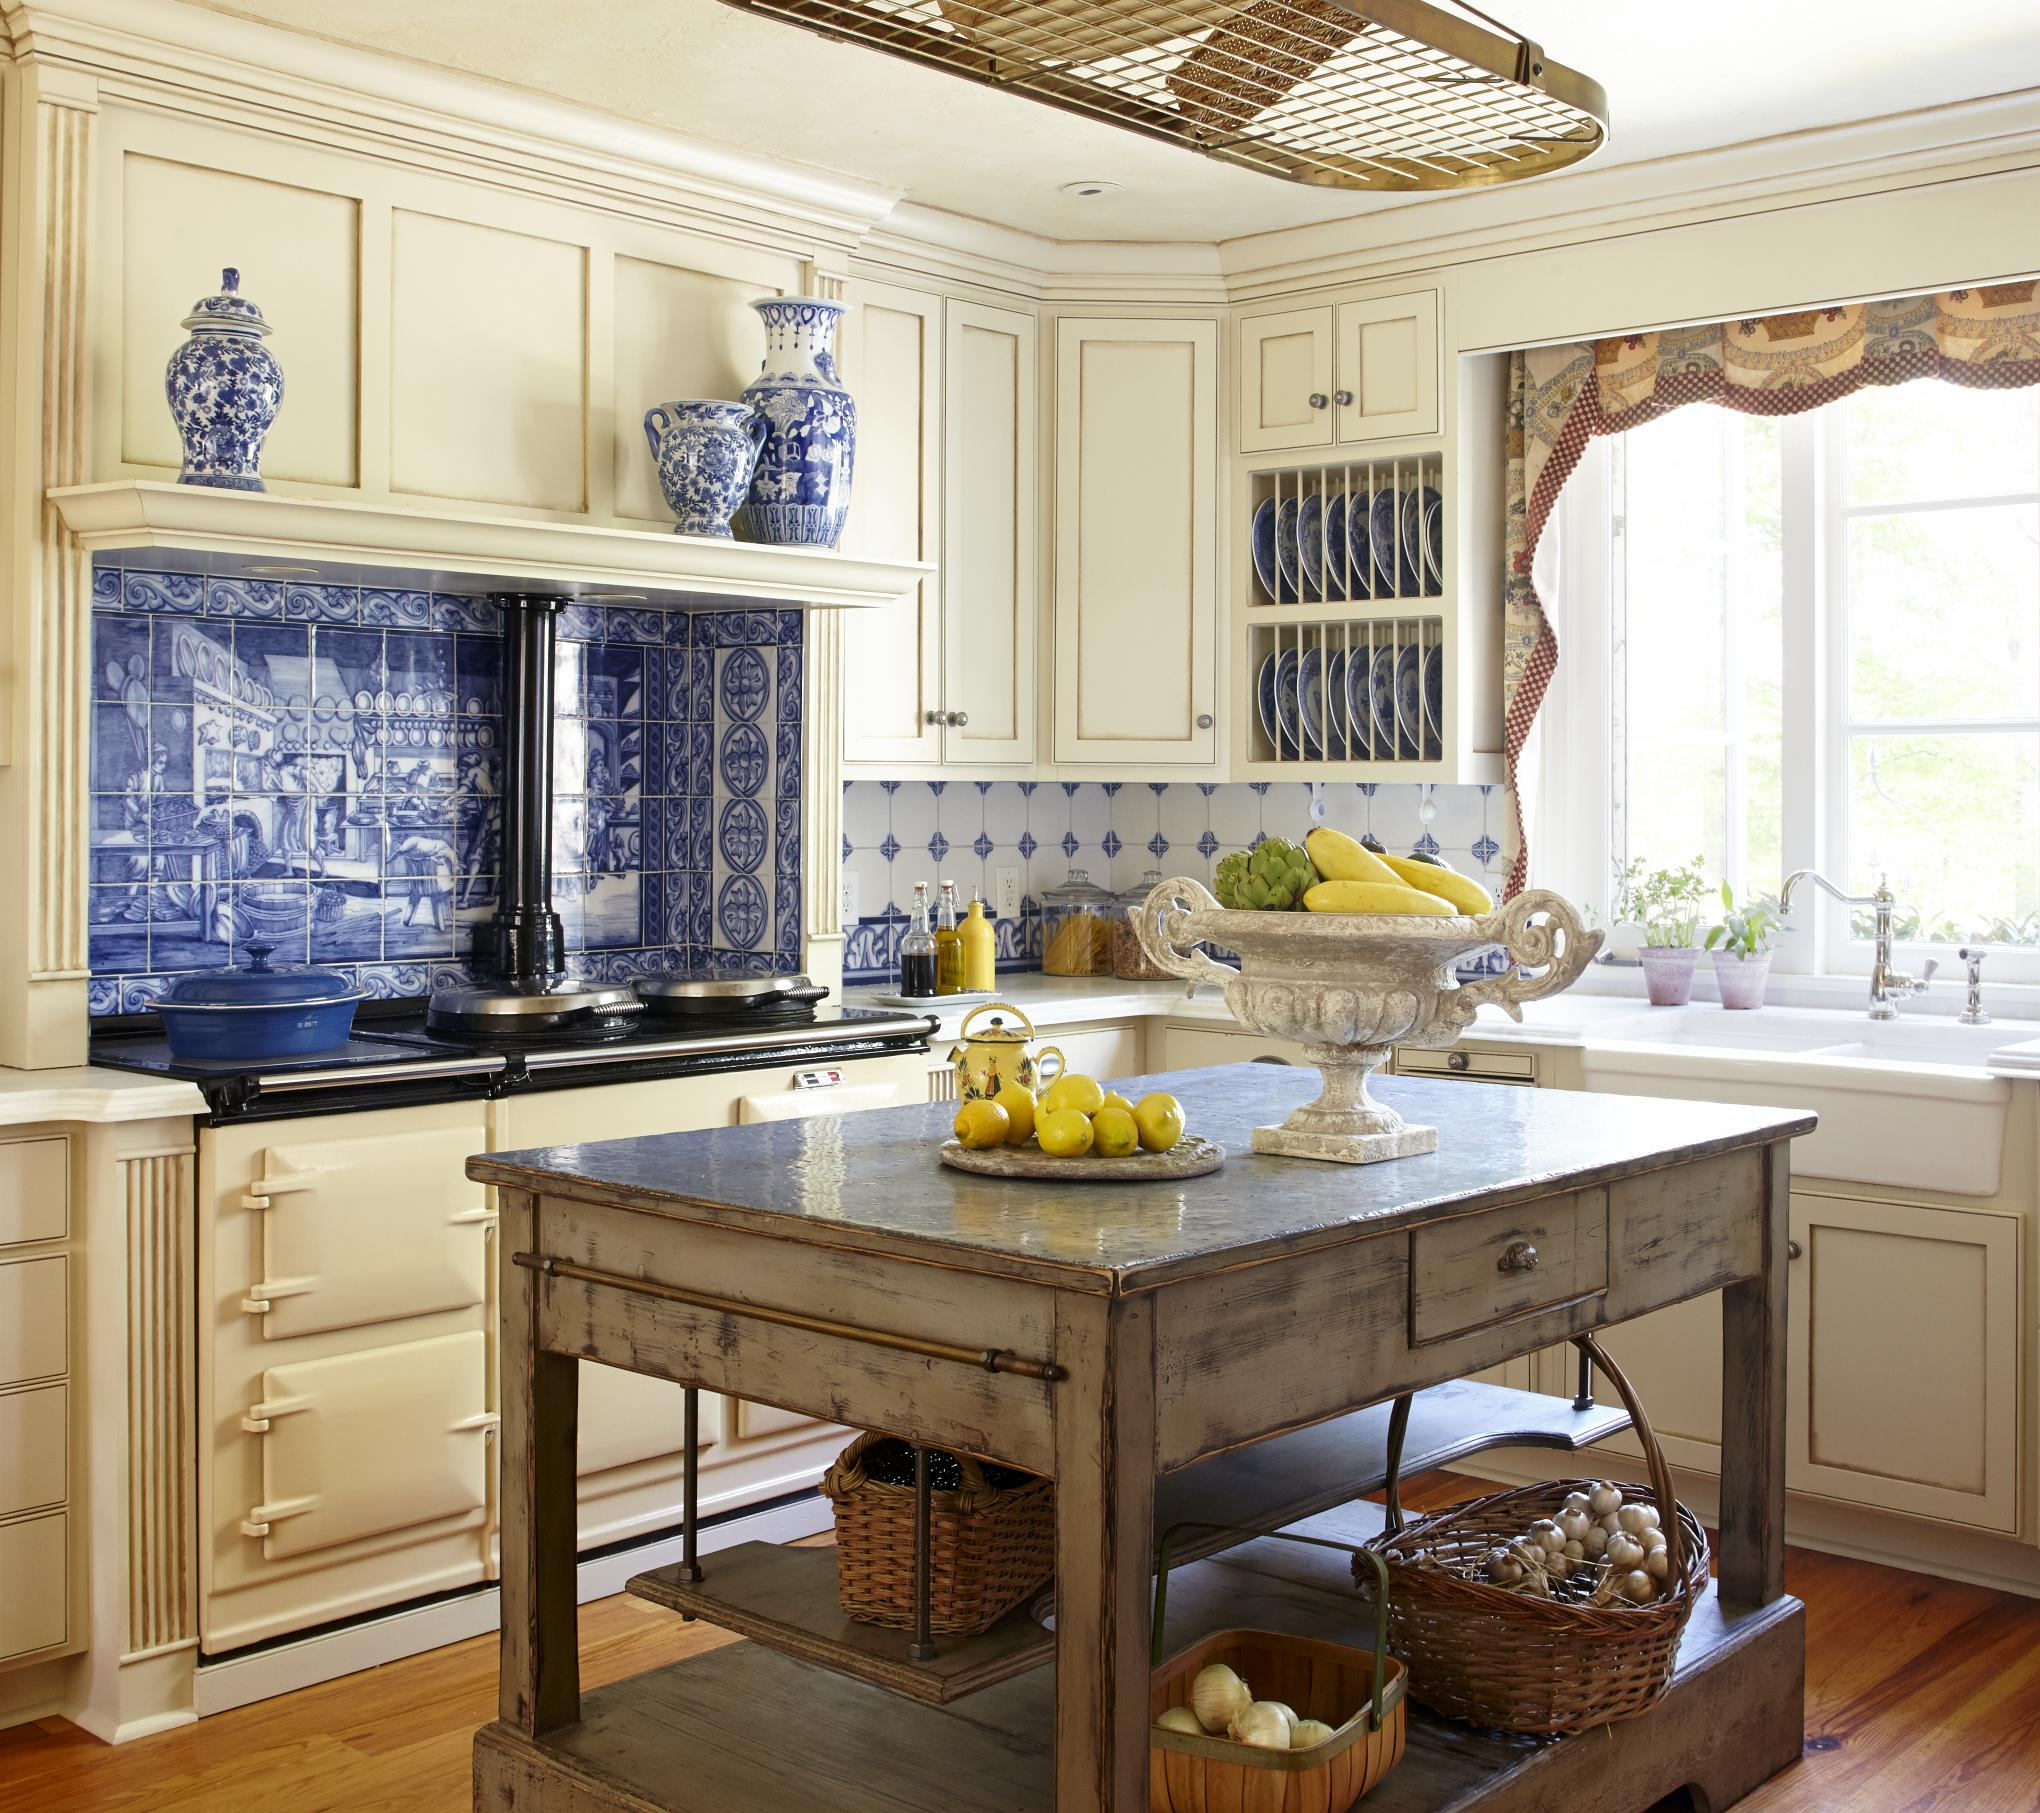 Kitchen Decorating Ideas Photos: Country French Kitchens